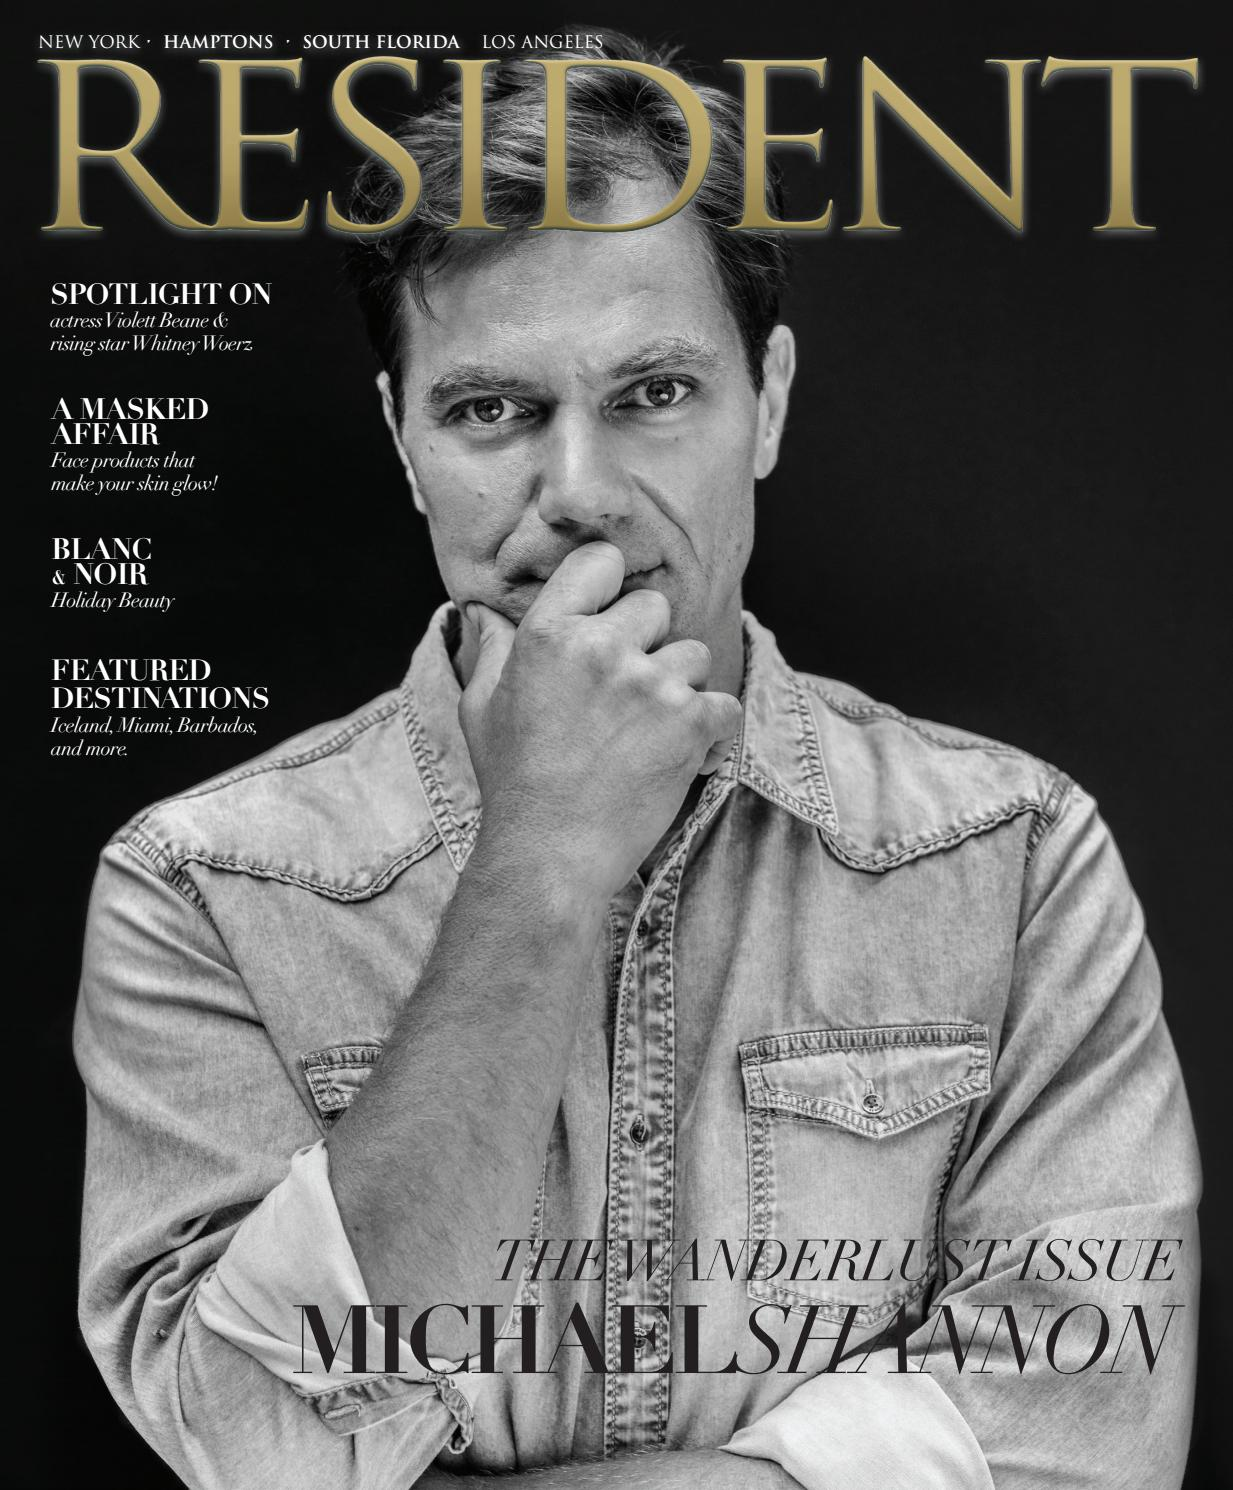 resident magazine 2016 issue ian mellencamp by resident magazine 2016 issue ian mellencamp by resident magazine issuu